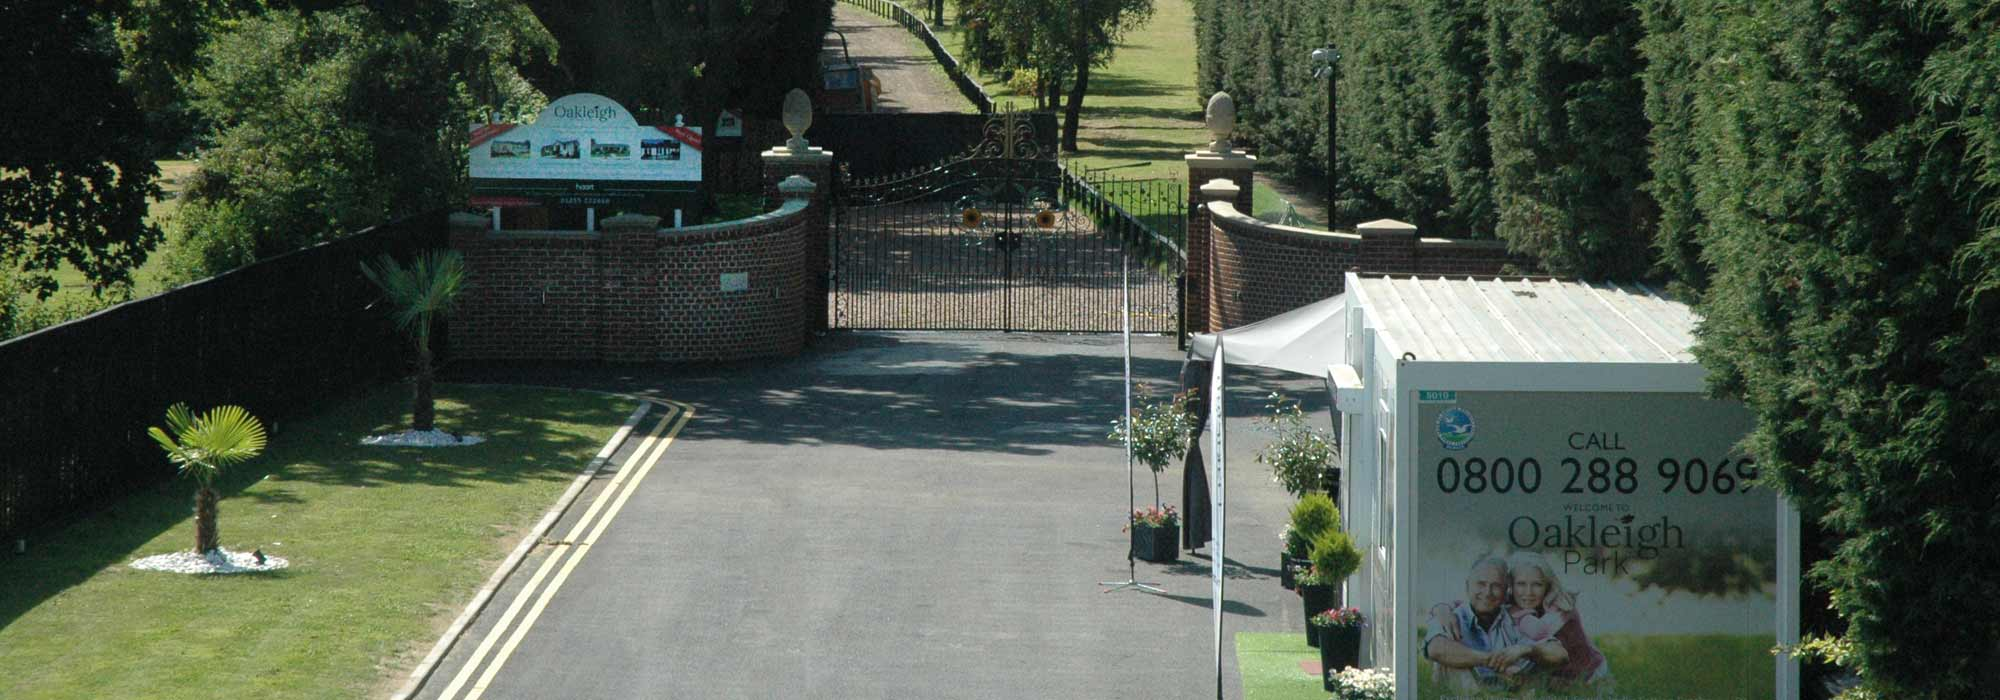 Residential caravan parks in essex Oakleigh park about residential homes